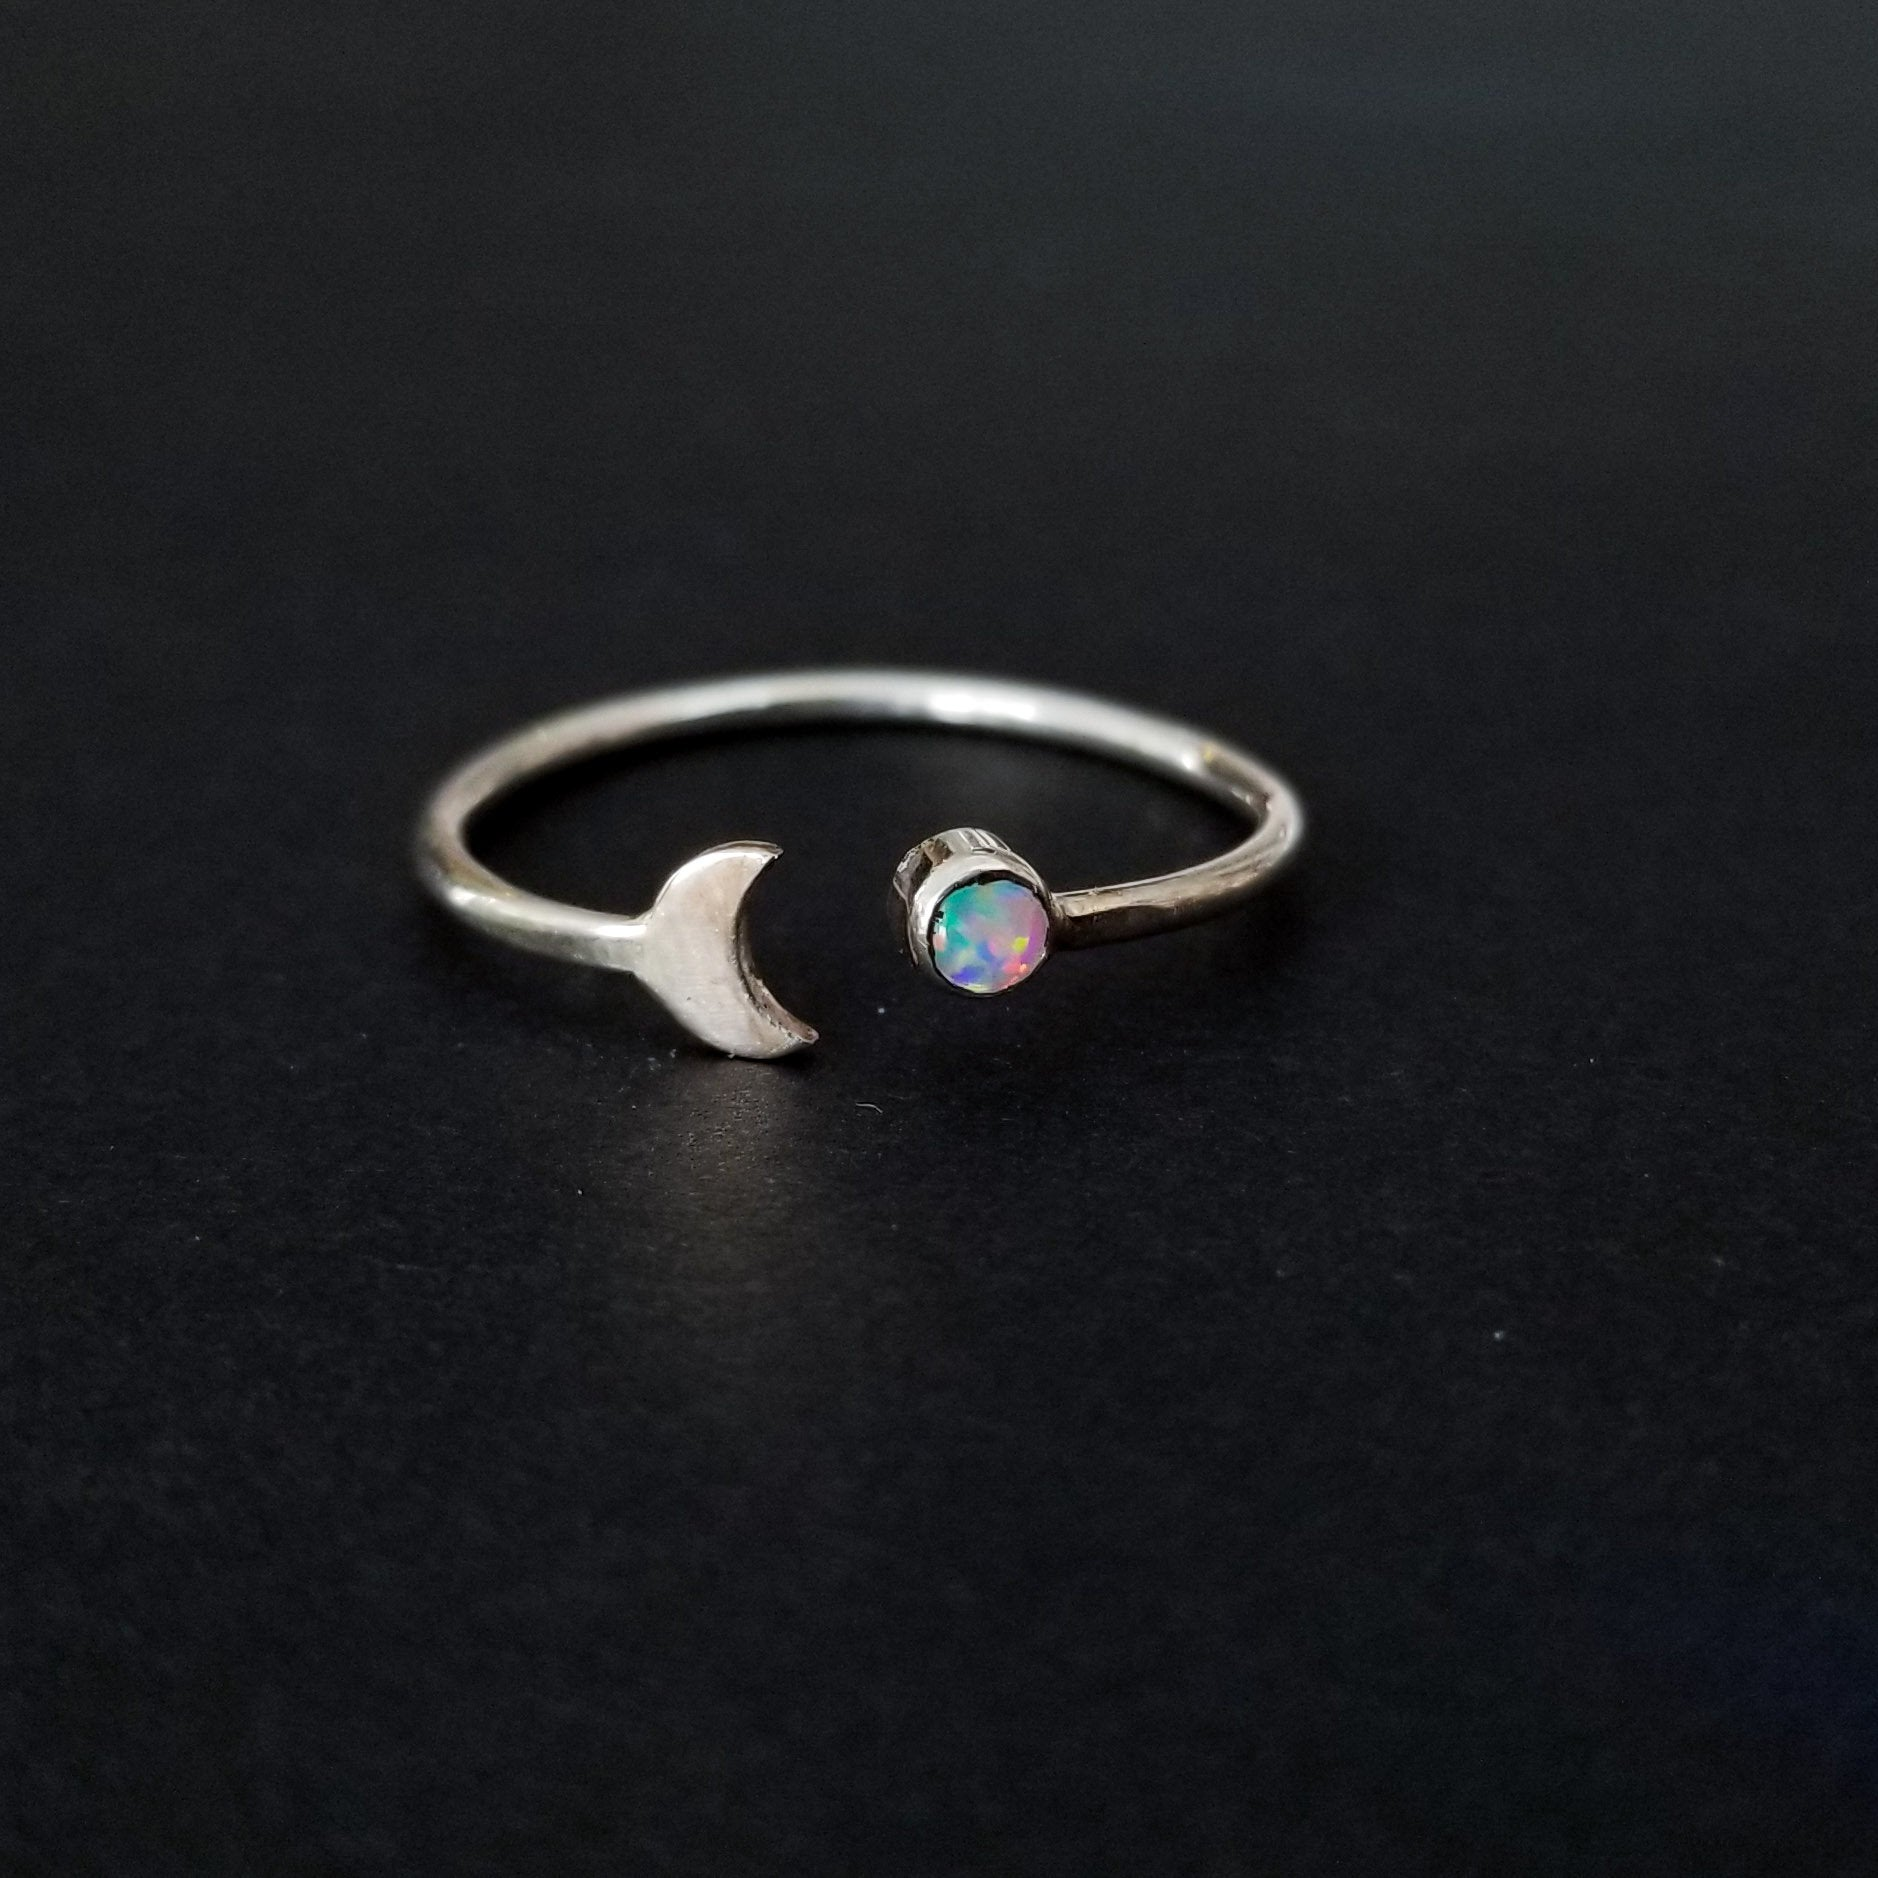 Opal Crescent Moon Ring-Ring-Inchoo Bijoux-Inchoo Bijoux